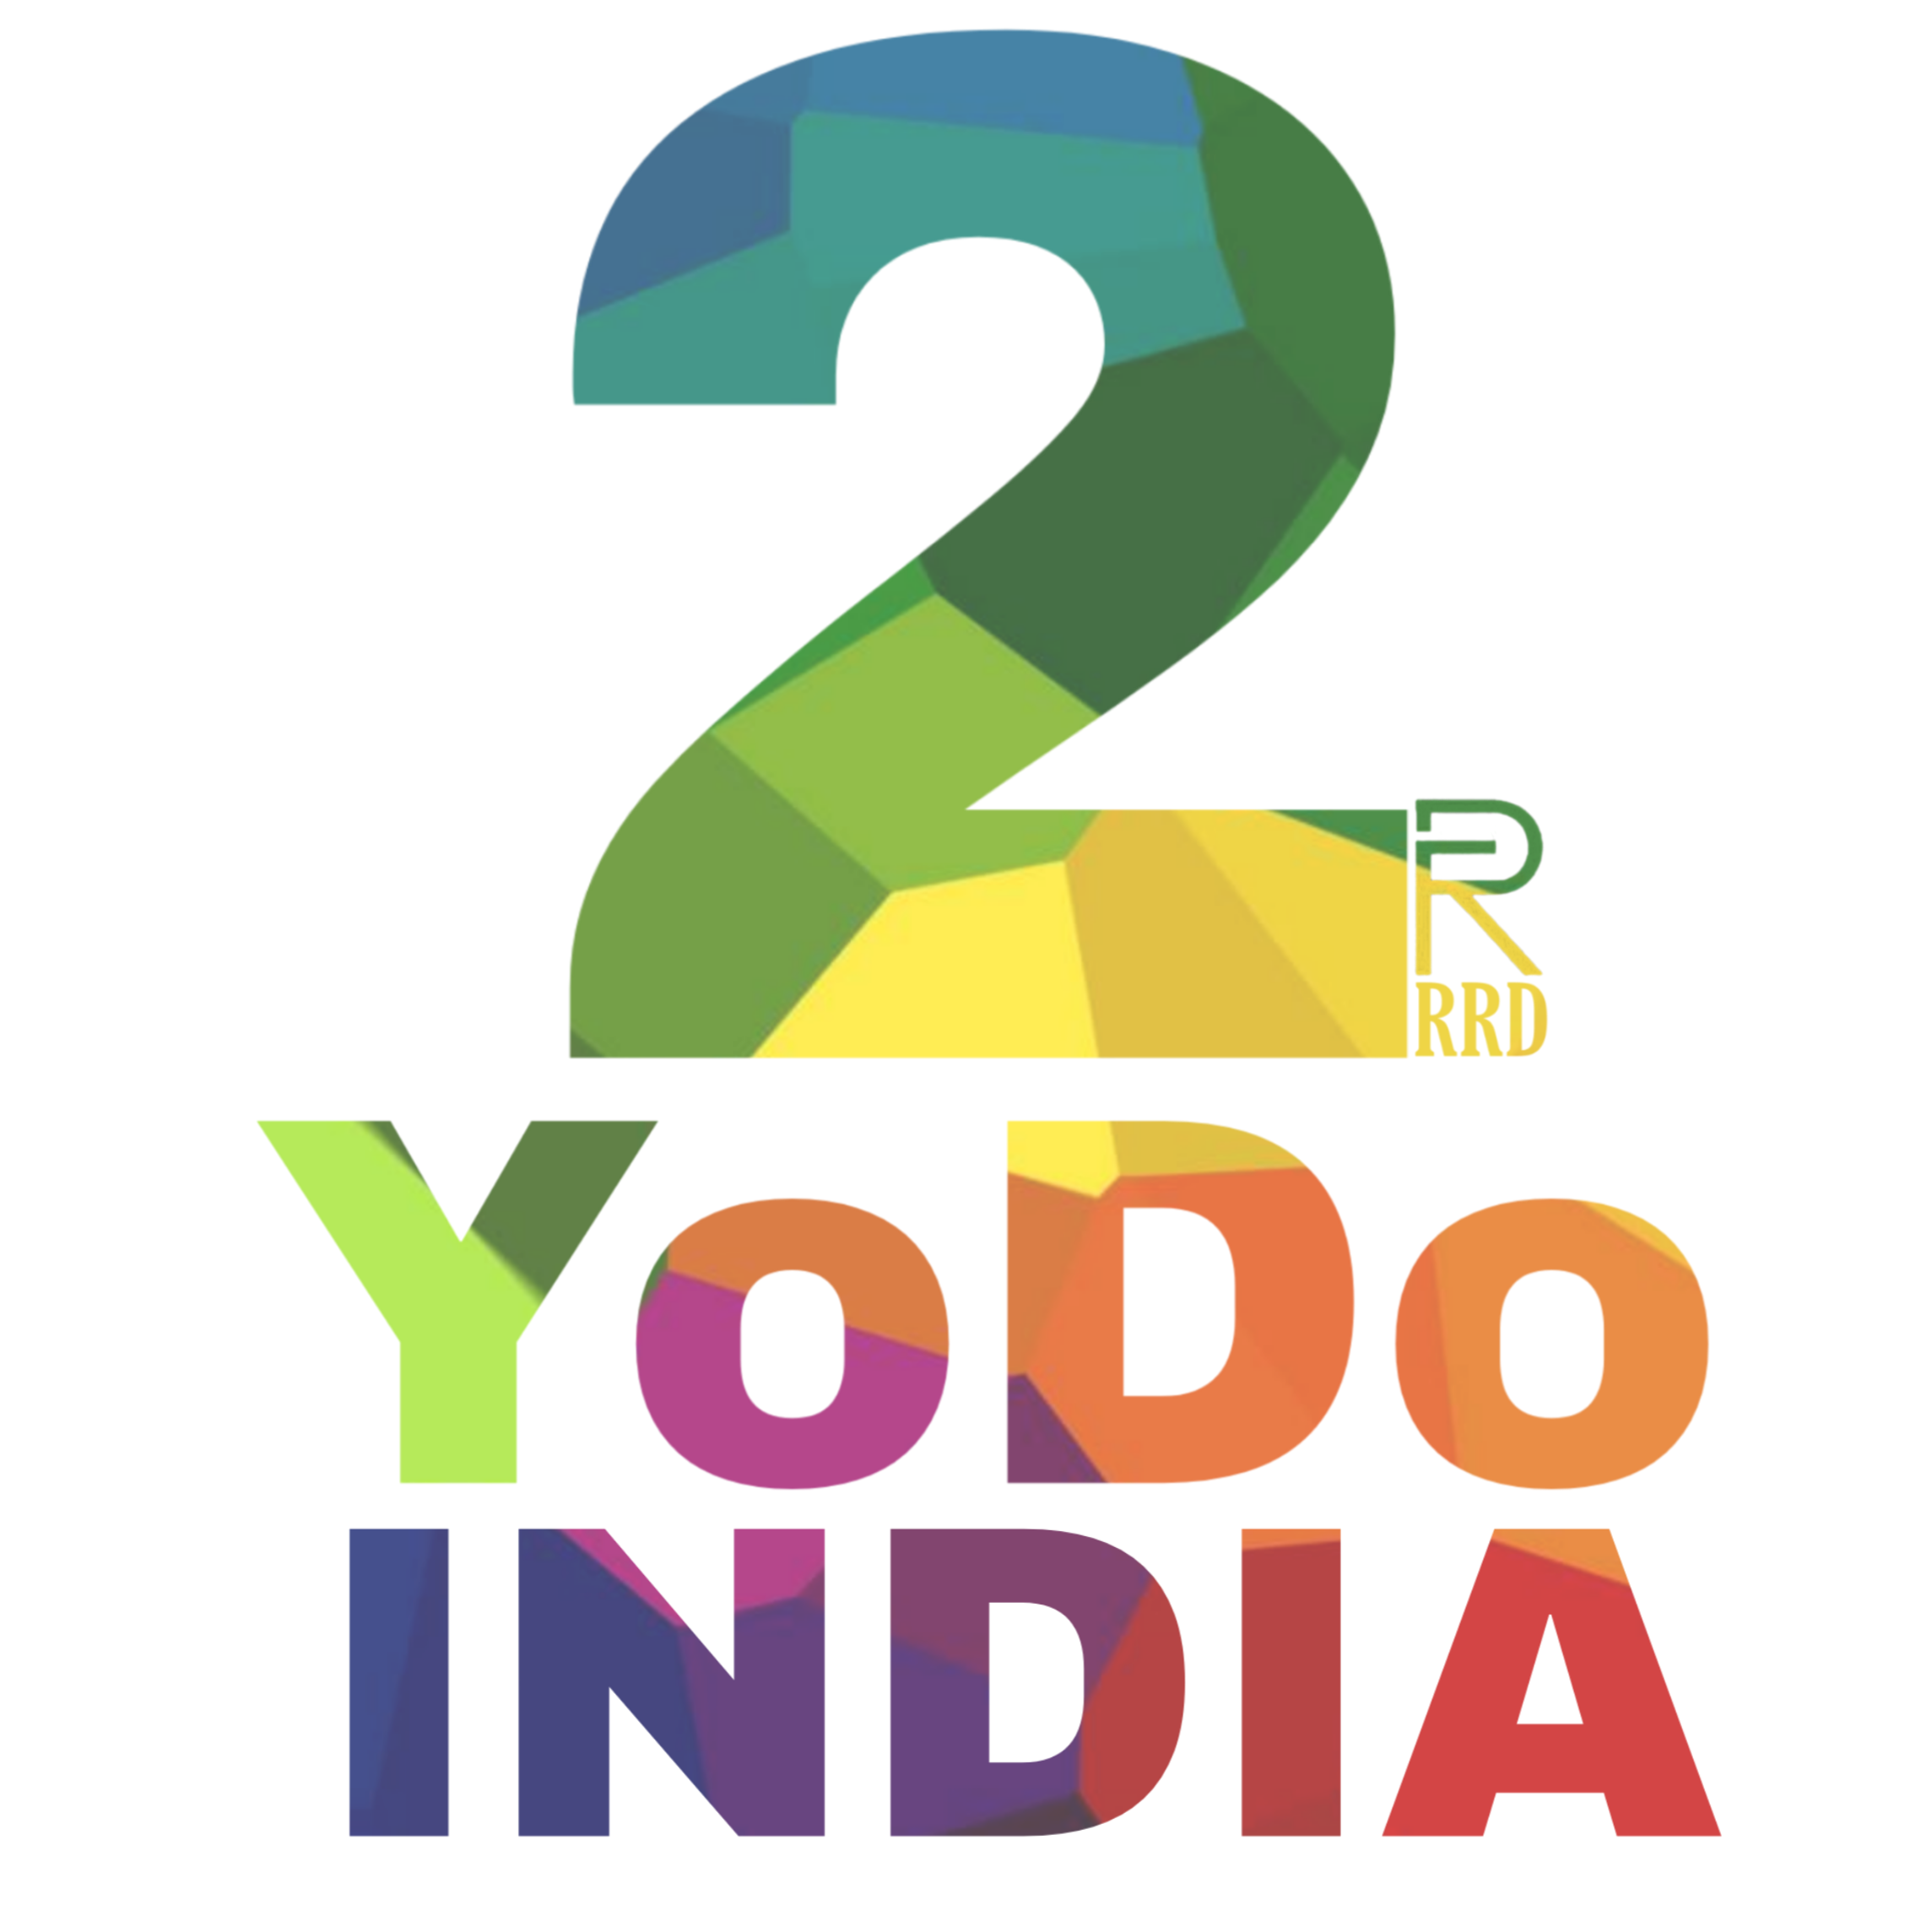 """Hello friends, Welcome to """"2YoDo INDIA"""", 2YoDoINDIA News & Media is the digital wing of the 2YoDoINDIA Pvt. Ltd. This media and communications group with its interests spanning across Political, National, International, Bollywood, Sports, Cricket, Tech News, Latest technology news daily, new best tech reviews which include mobiles, tablets, laptops, video games and education and stories as well as poetry. We also cover all New Technology Online news headlines on latest Mobiles News, Technology News, New Technology Online websites news, including analysis, features, specifications and prices."""